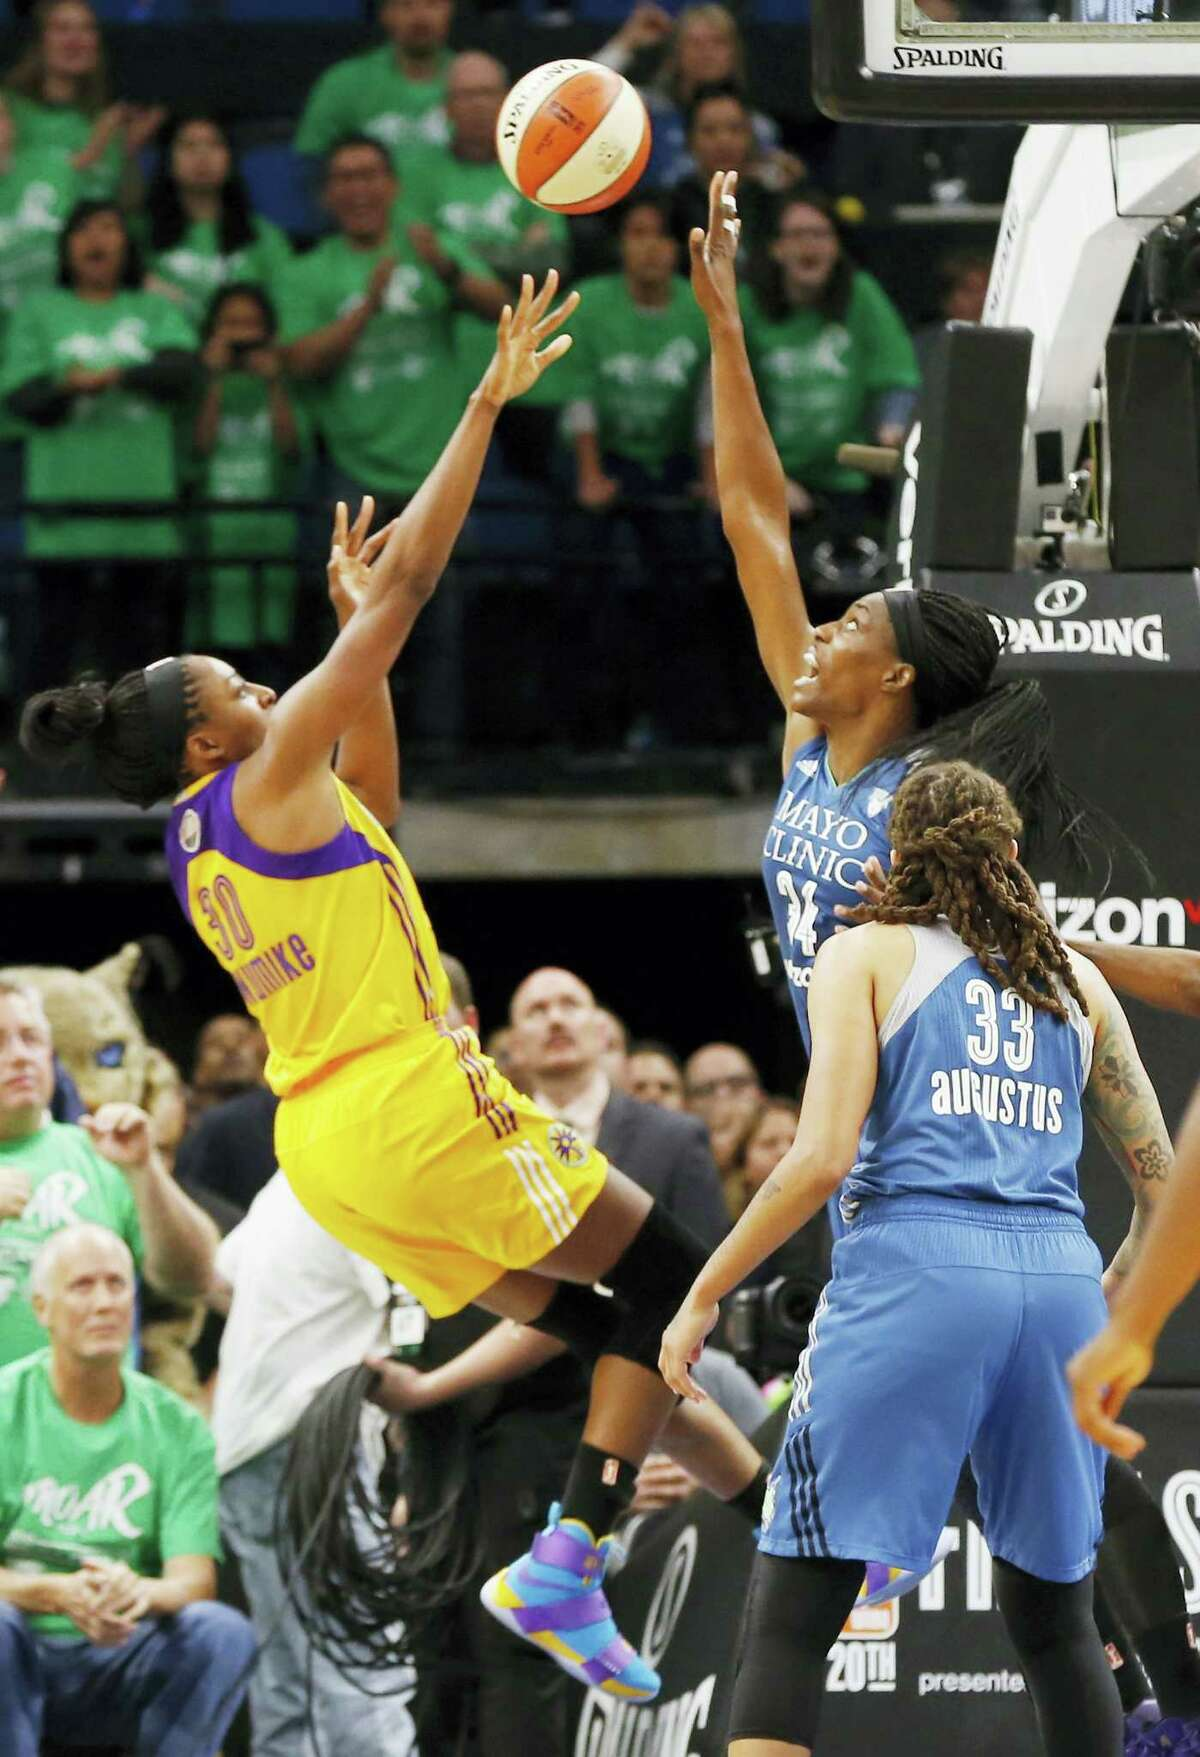 Los Angeles Sparks' Nneka Ogwumike, left, shoots the game wining shot with about 4 seconds left over Minnesota Lynx defender Sylvia Fowles on Thursday.